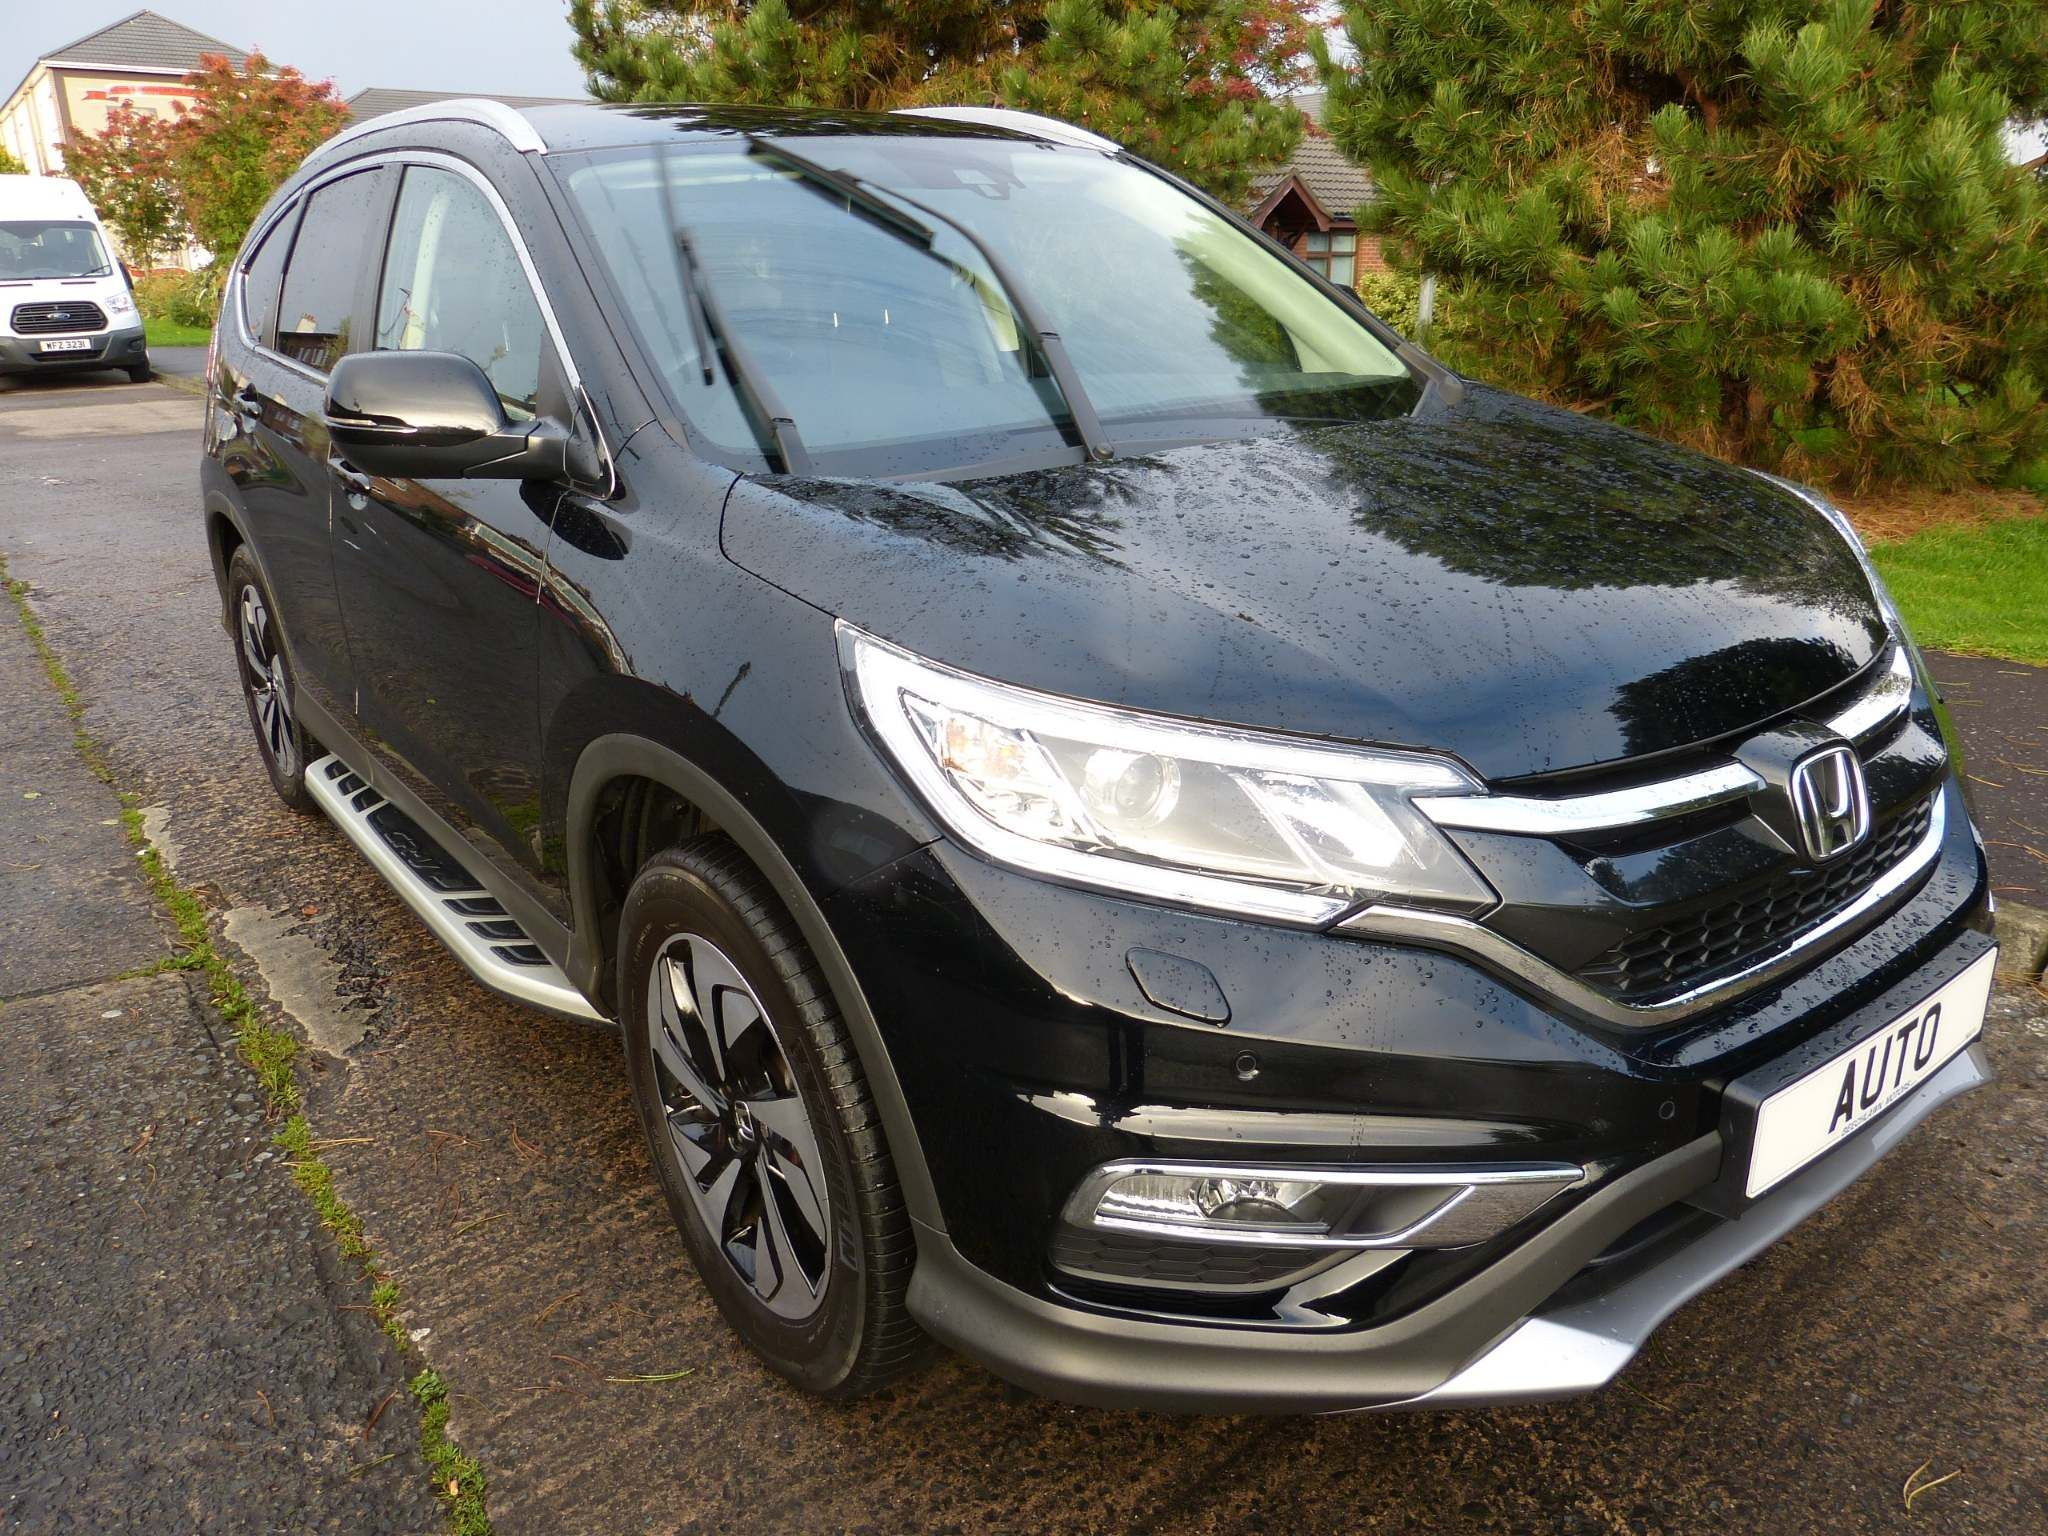 2018 HONDA CR-V 1.6 i-DTEC EX Auto 4WD Diesel Automatic leather glass roof, sidesteps. – Beechlawn Motors Belfast